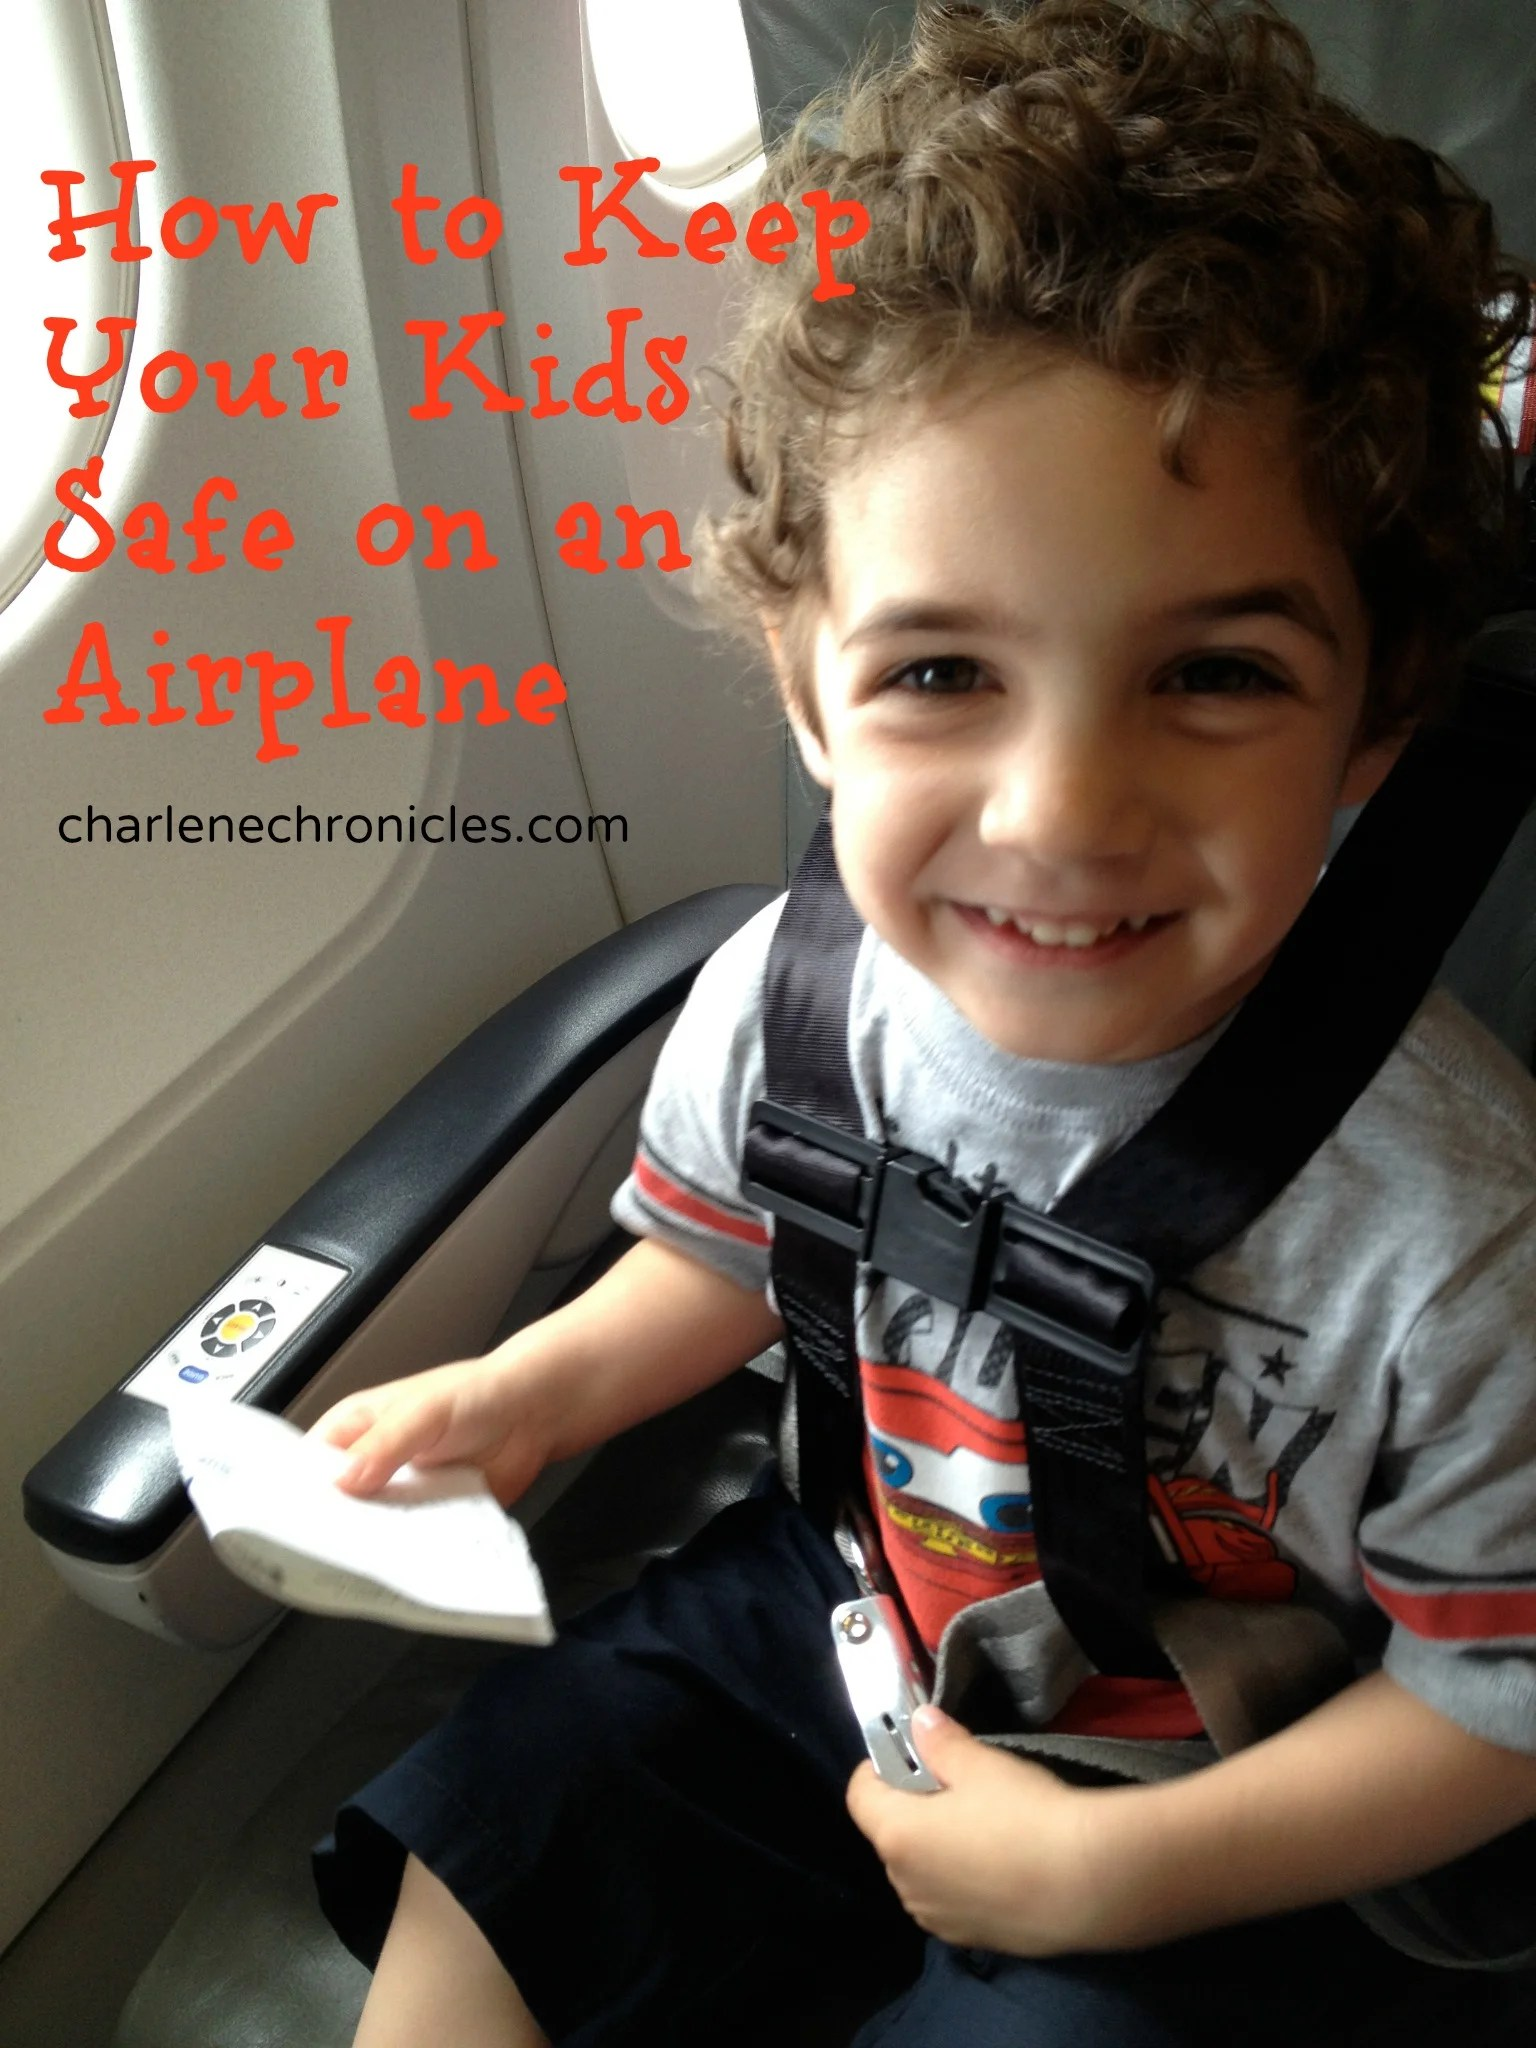 Child Safety Harness >> Toddler Seat Belt for Airplanes | The CARES® Airplane Safety Harness for Kids - Charlene Chronicles